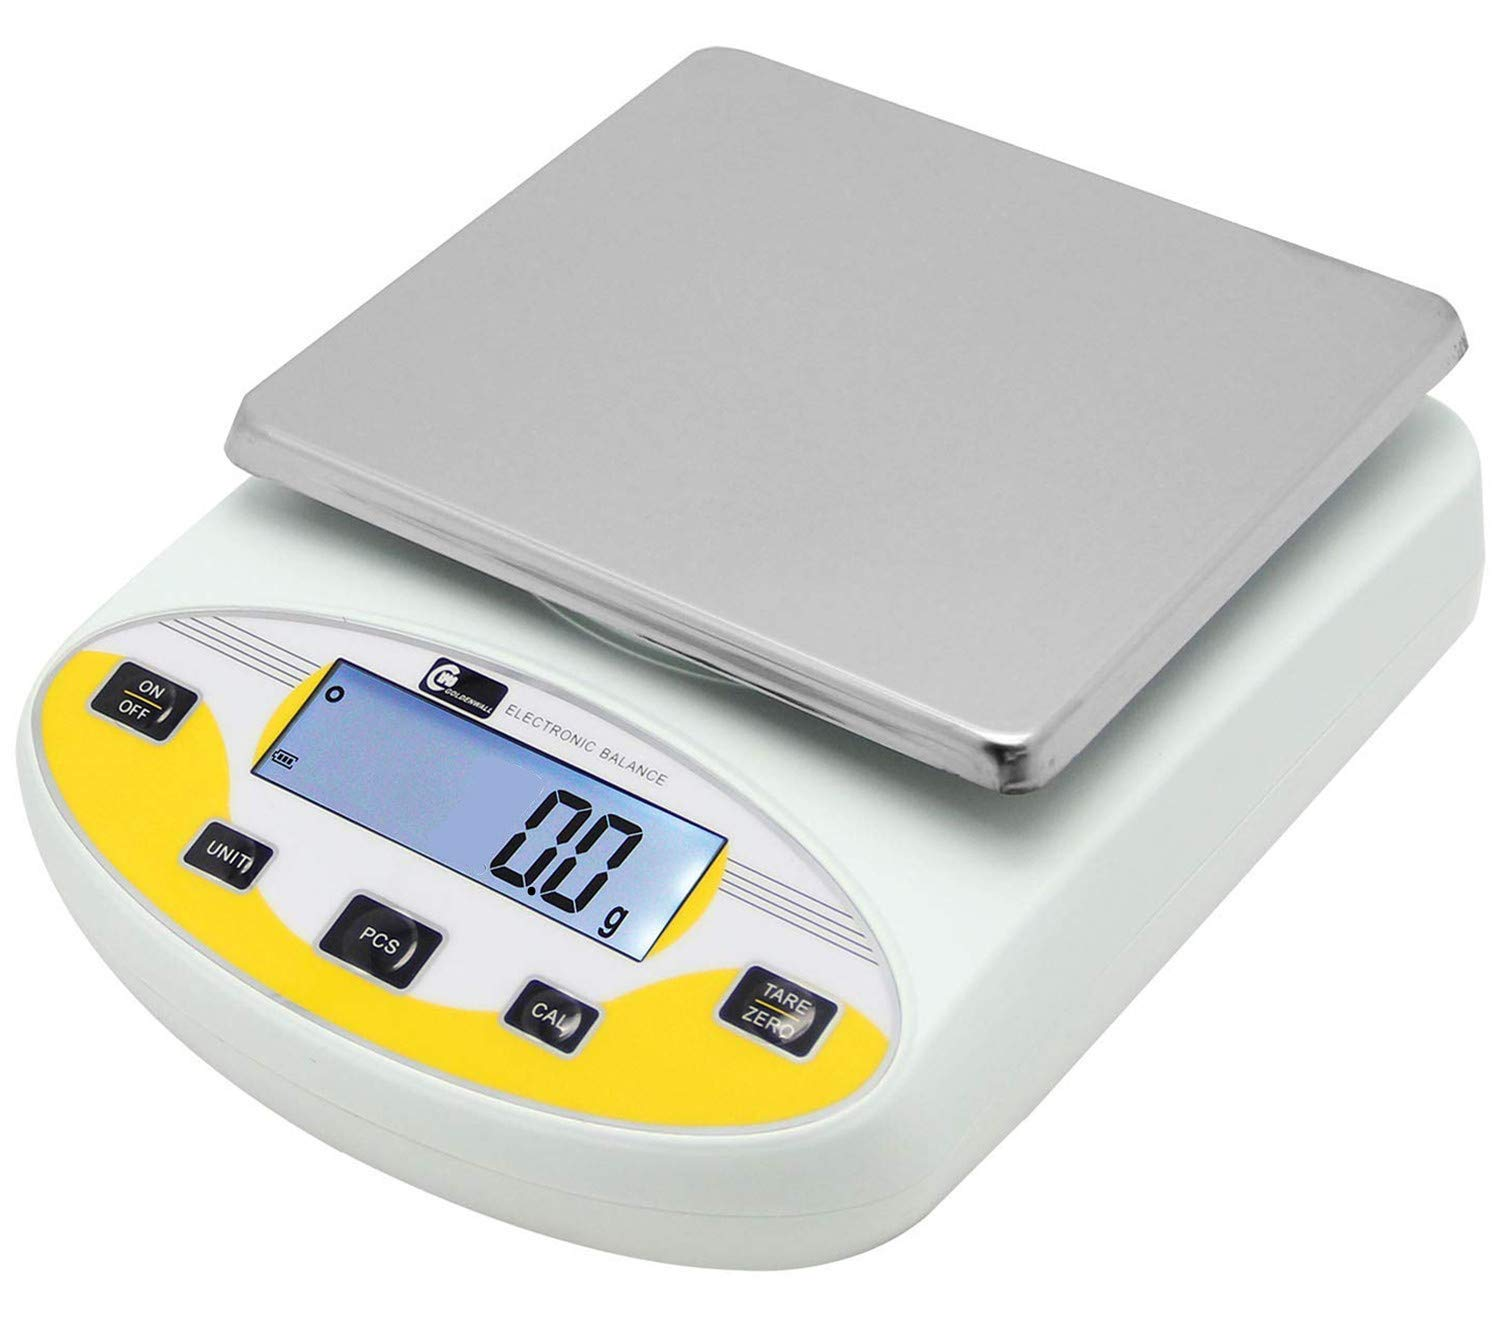 CGOLDENWALL Large range Lab Digital Analytical Balance Lab Precision Scale Jewelry Kitchen Scales Electronic Balance Weighing and Counting Scale 0.1g Calibrated Pan size 180140mm Yellow (20kg, 0.1g)